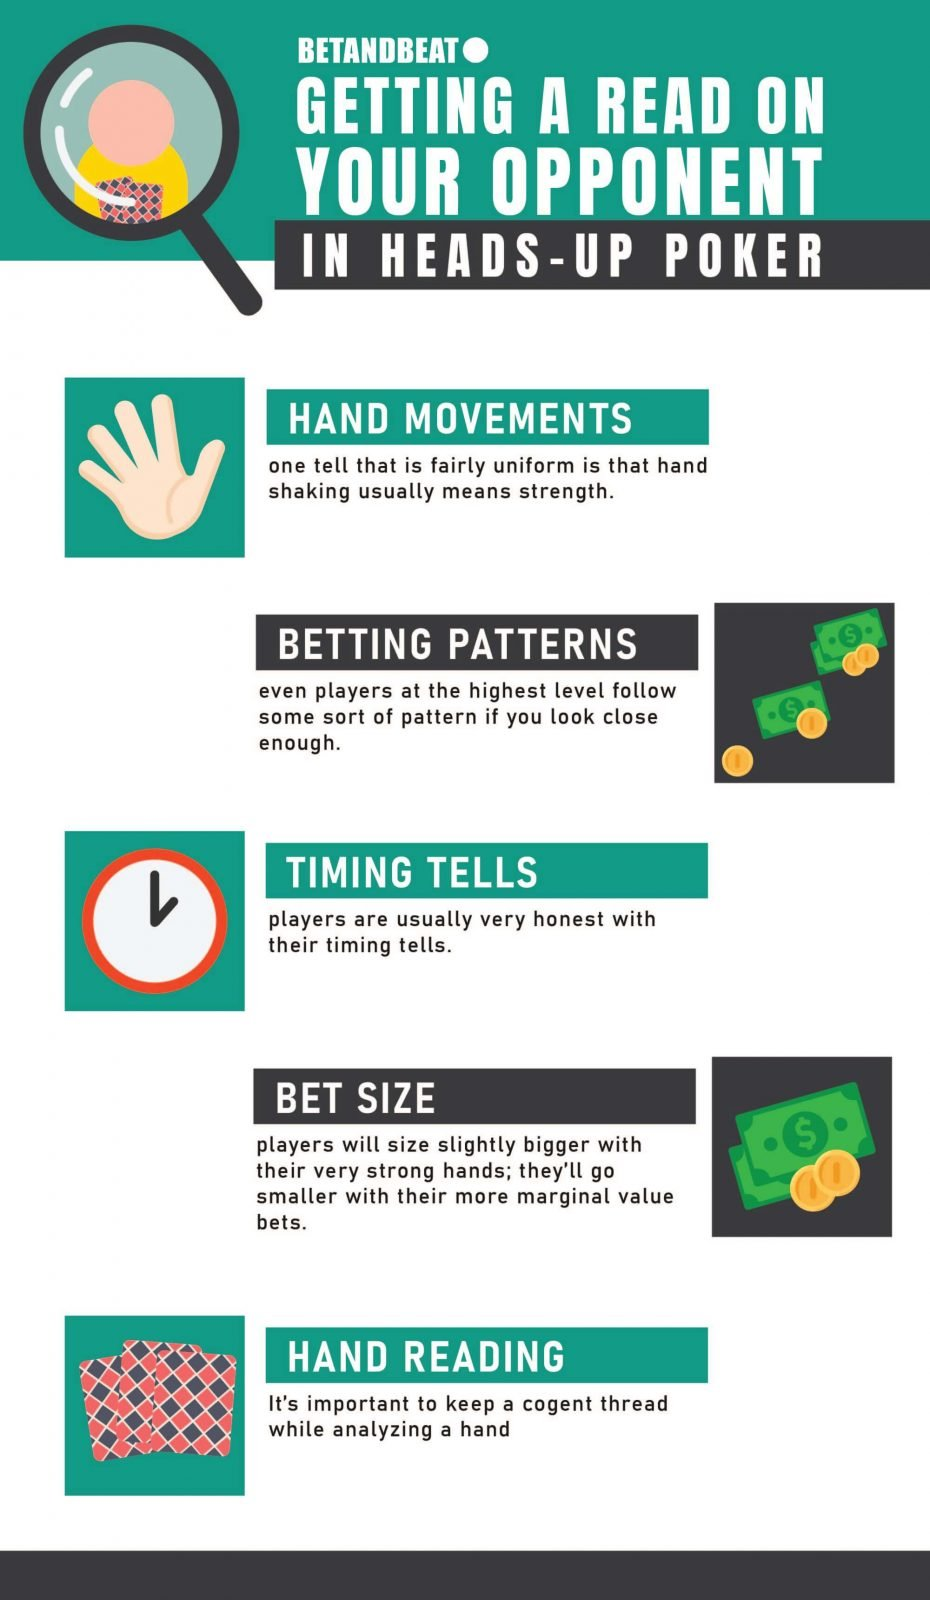 A list of tells to look out for in heads-up poker